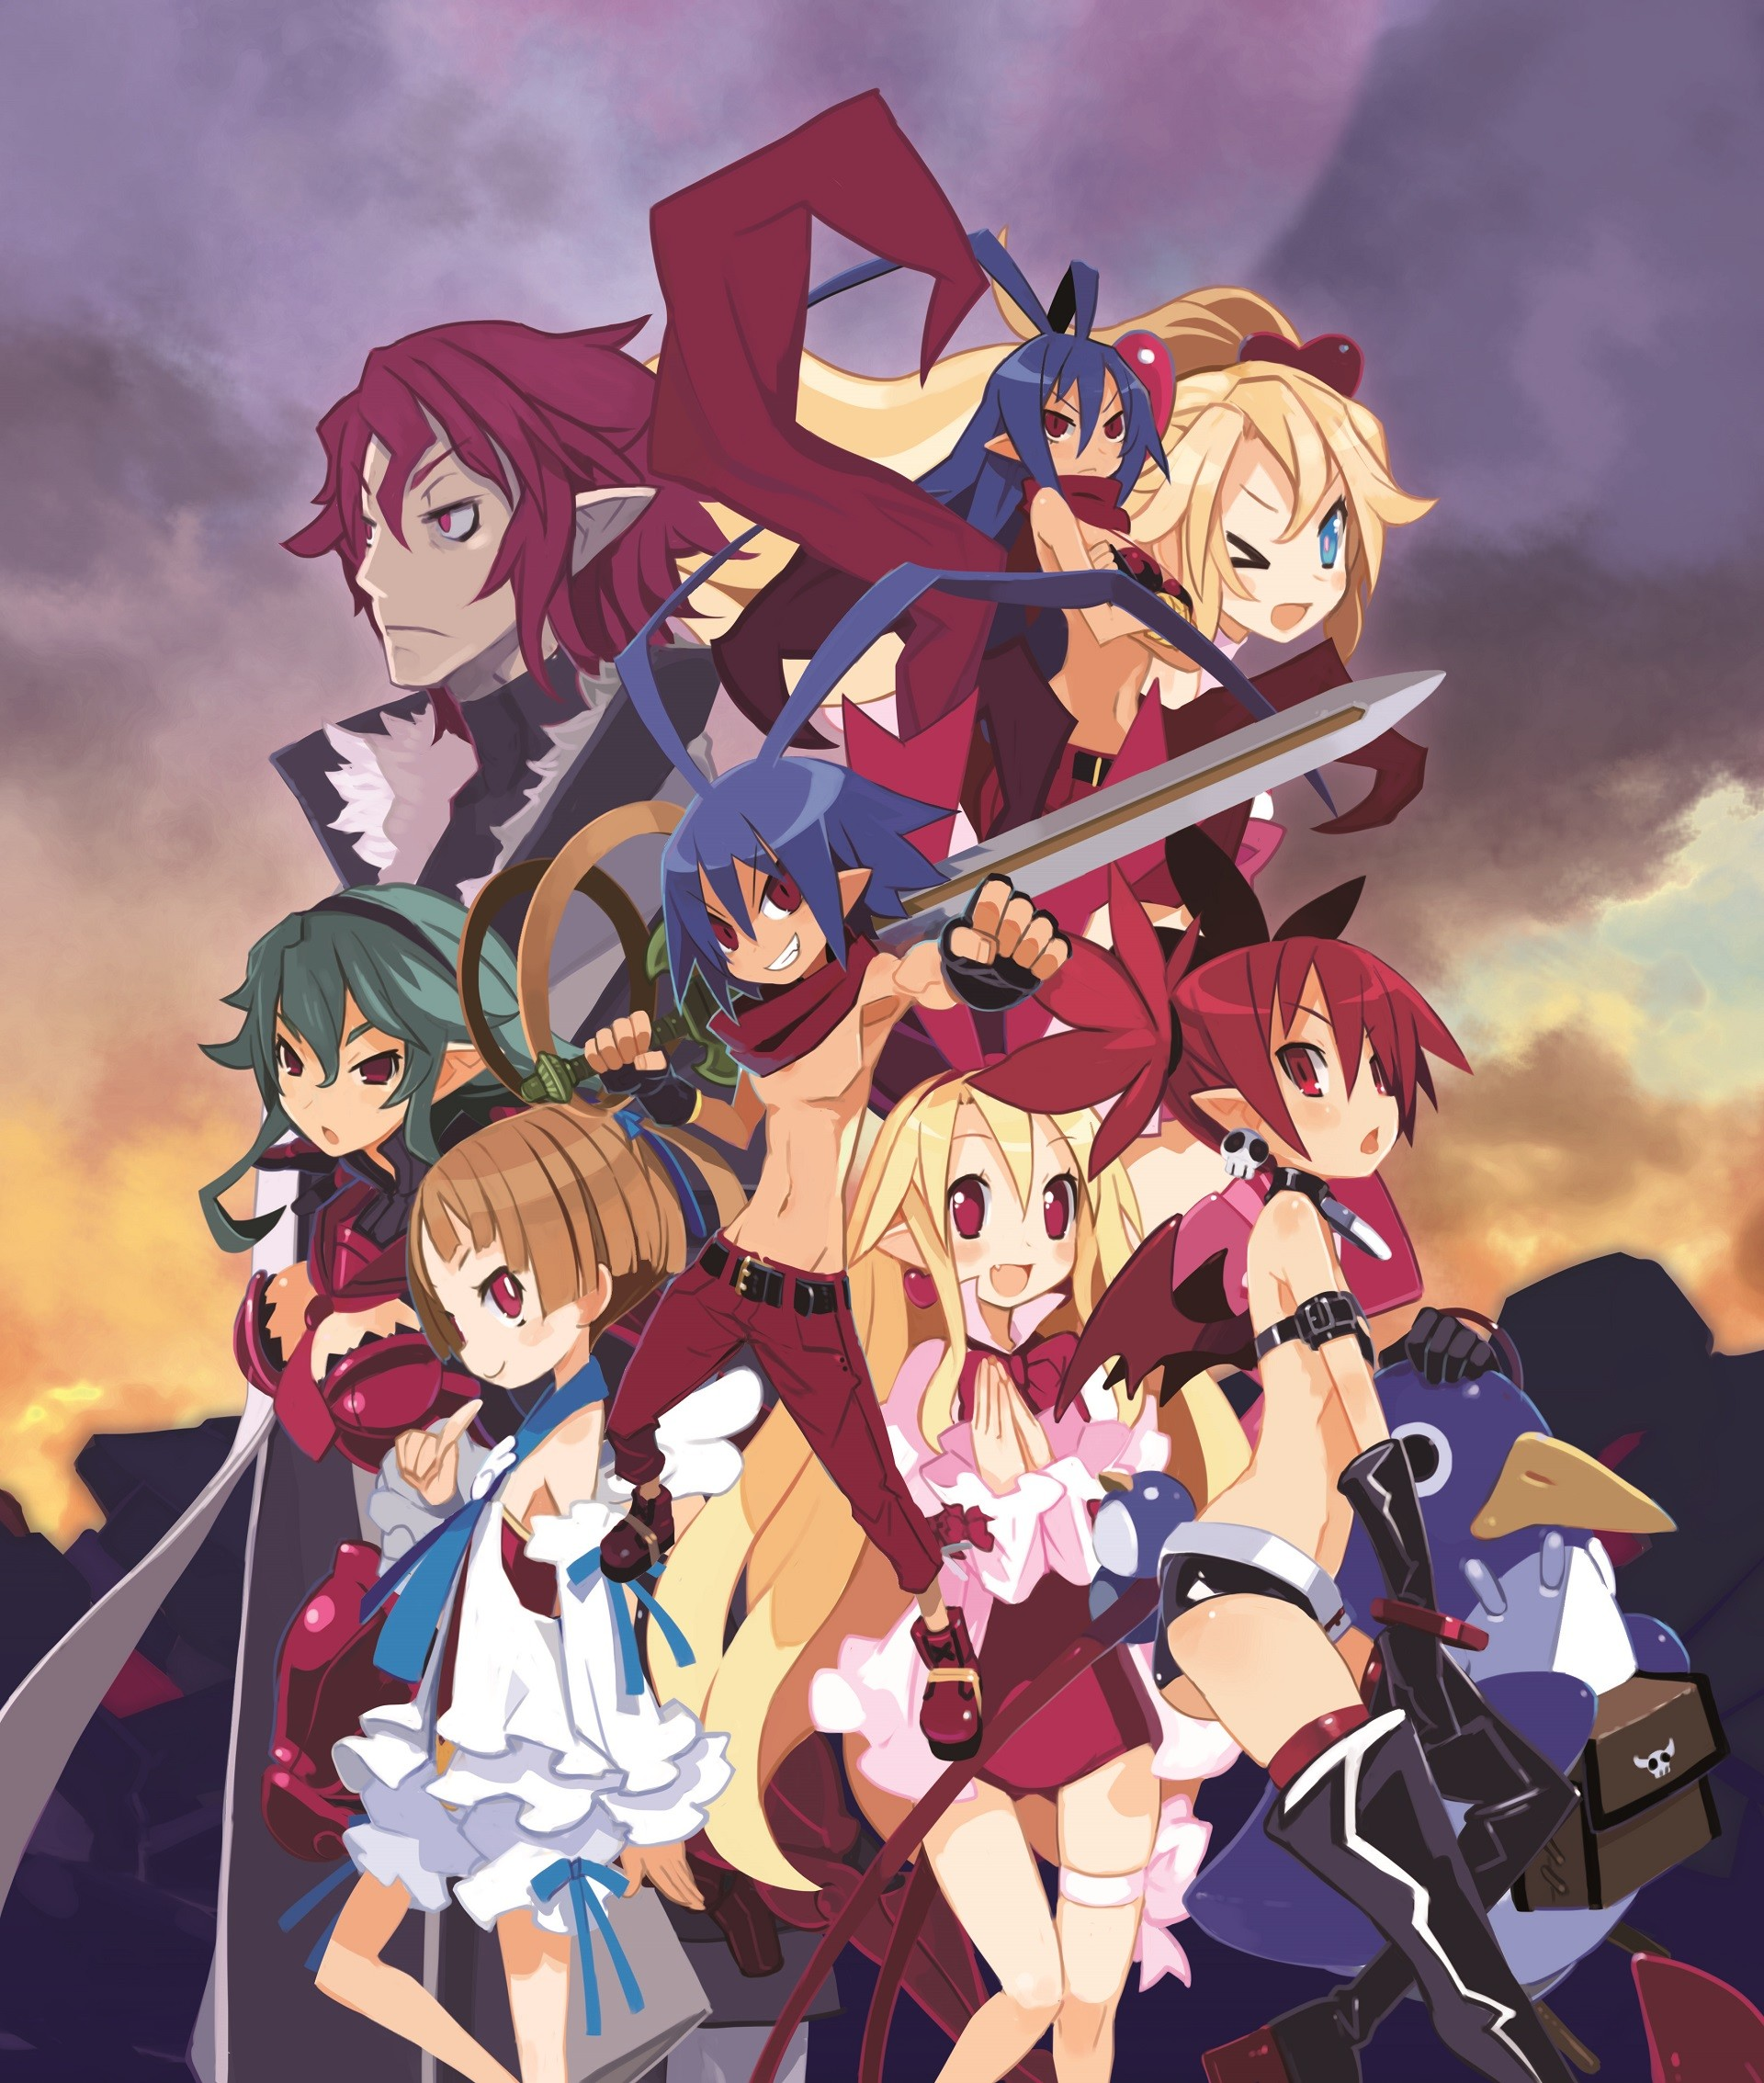 Res: 1920x2267, disgaea laharl etna and flonne anime